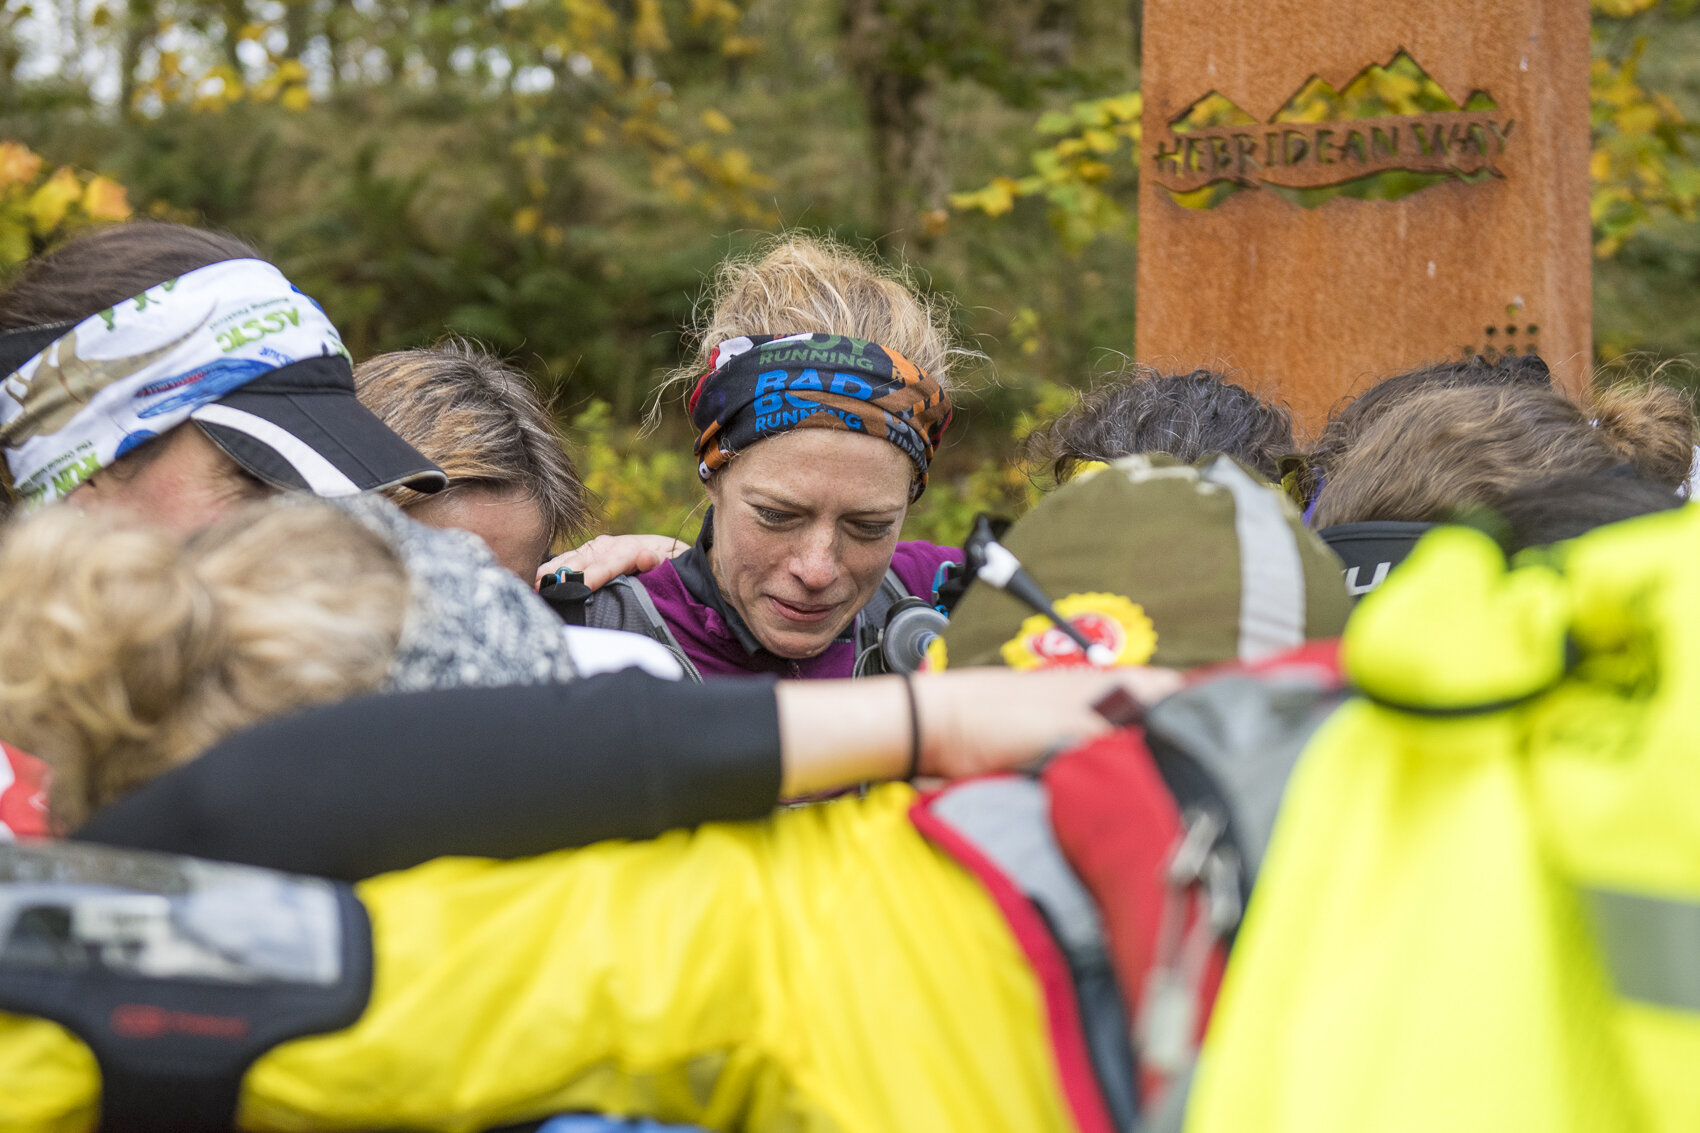 Lauras face says it all. We're done.  Photo: Leo Francis/Rat Race Adventure Sports